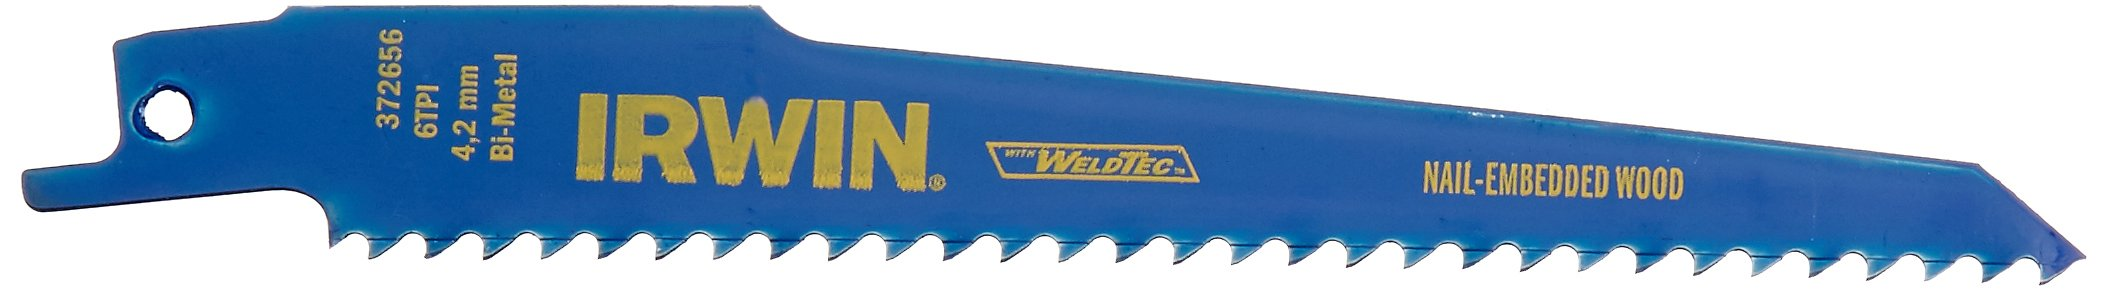 IRWIN Reciprocating Saw Blades, Wood with Nails, 6-Inch, 6 TPI, 25-Pack (372656B) by IRWIN